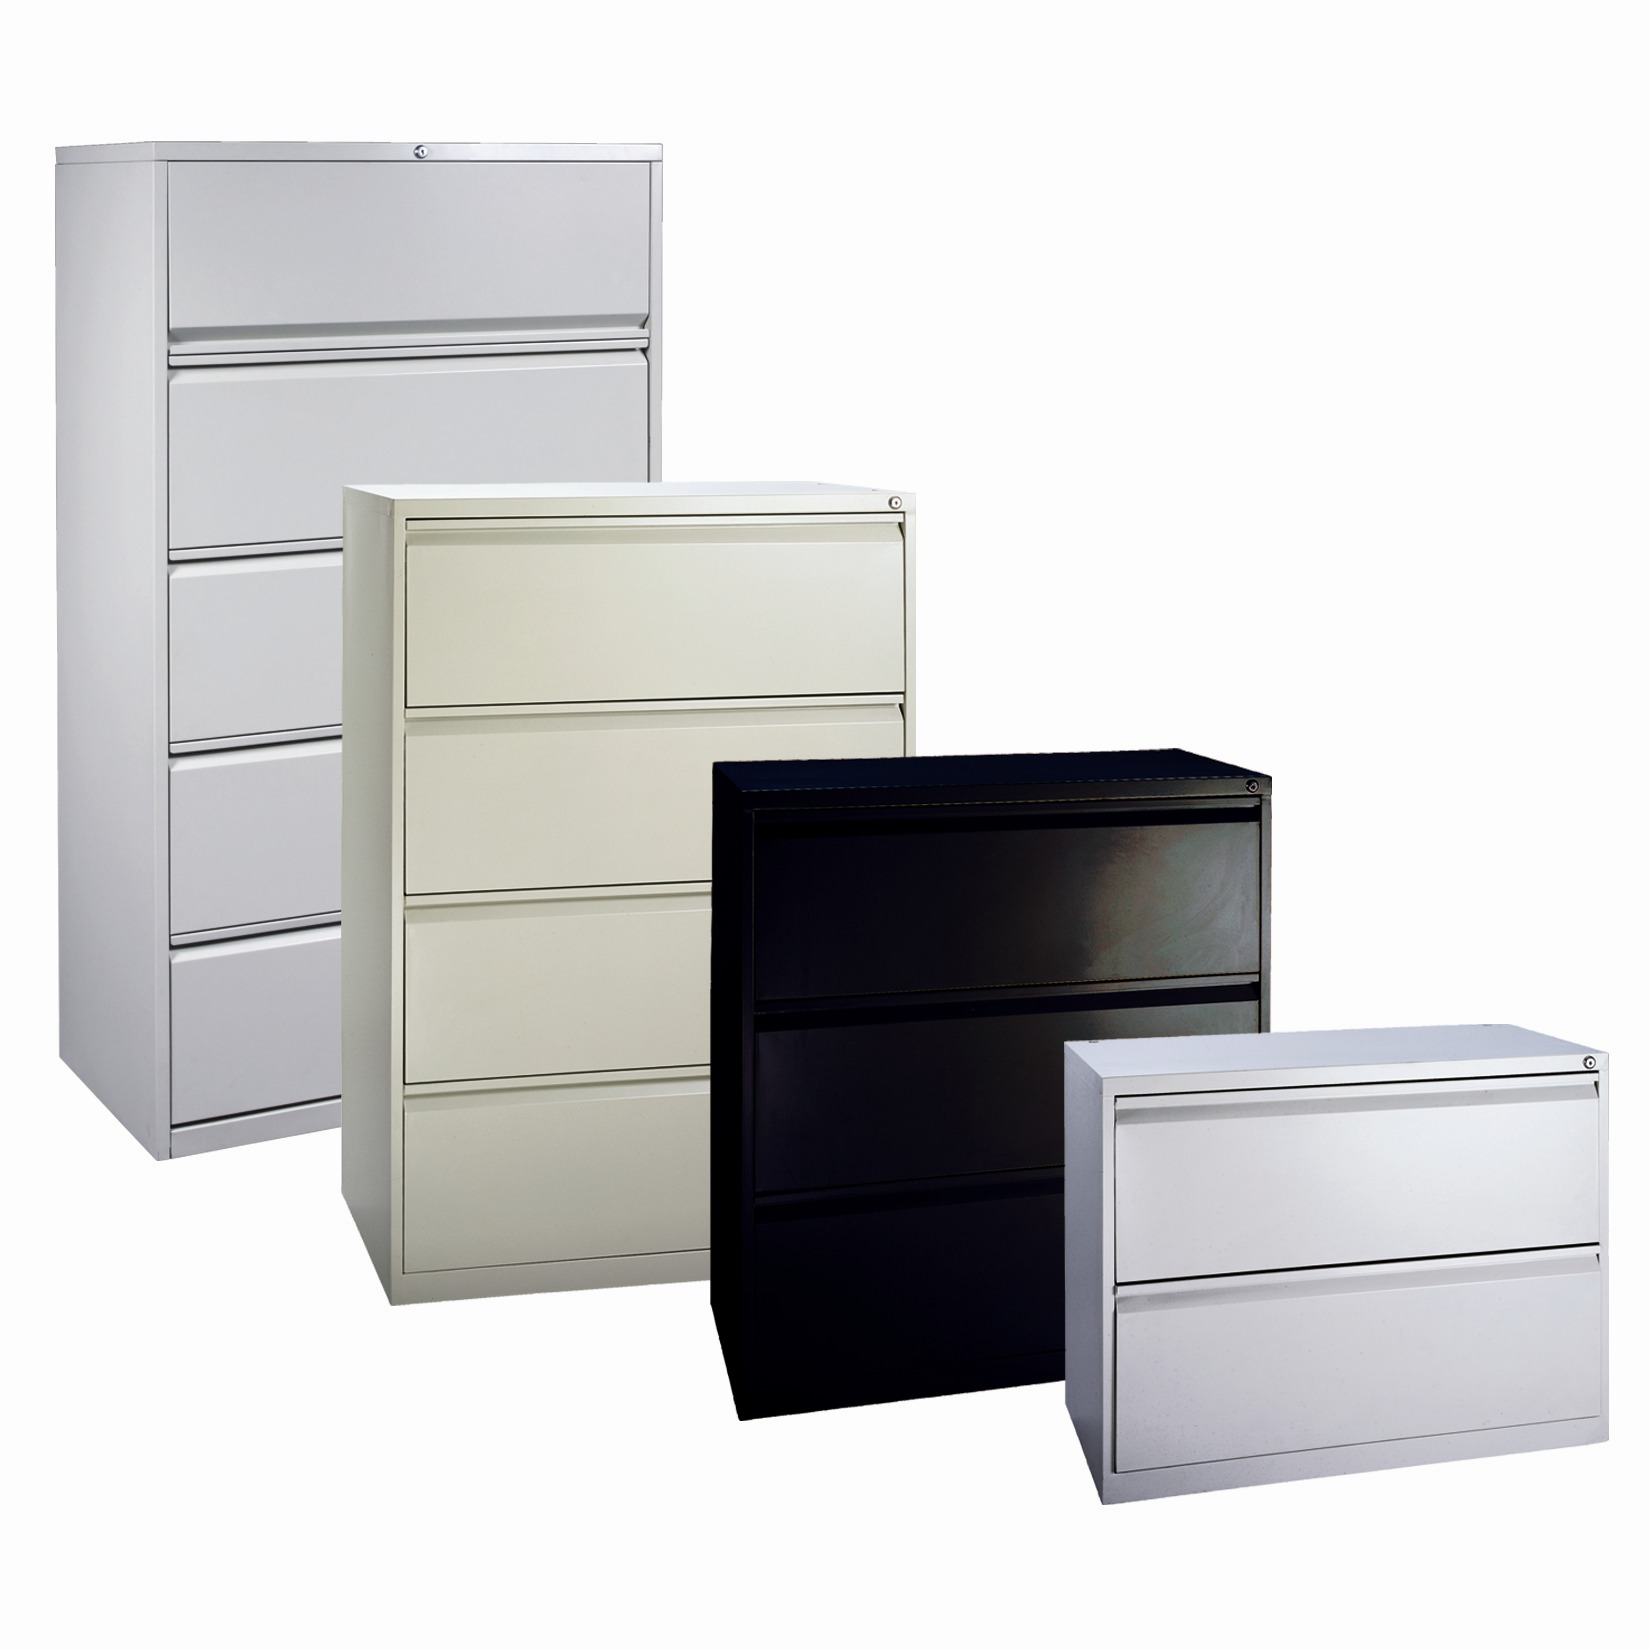 Office Furniture Cabinets integrated services - office furniture and cubicle specialists